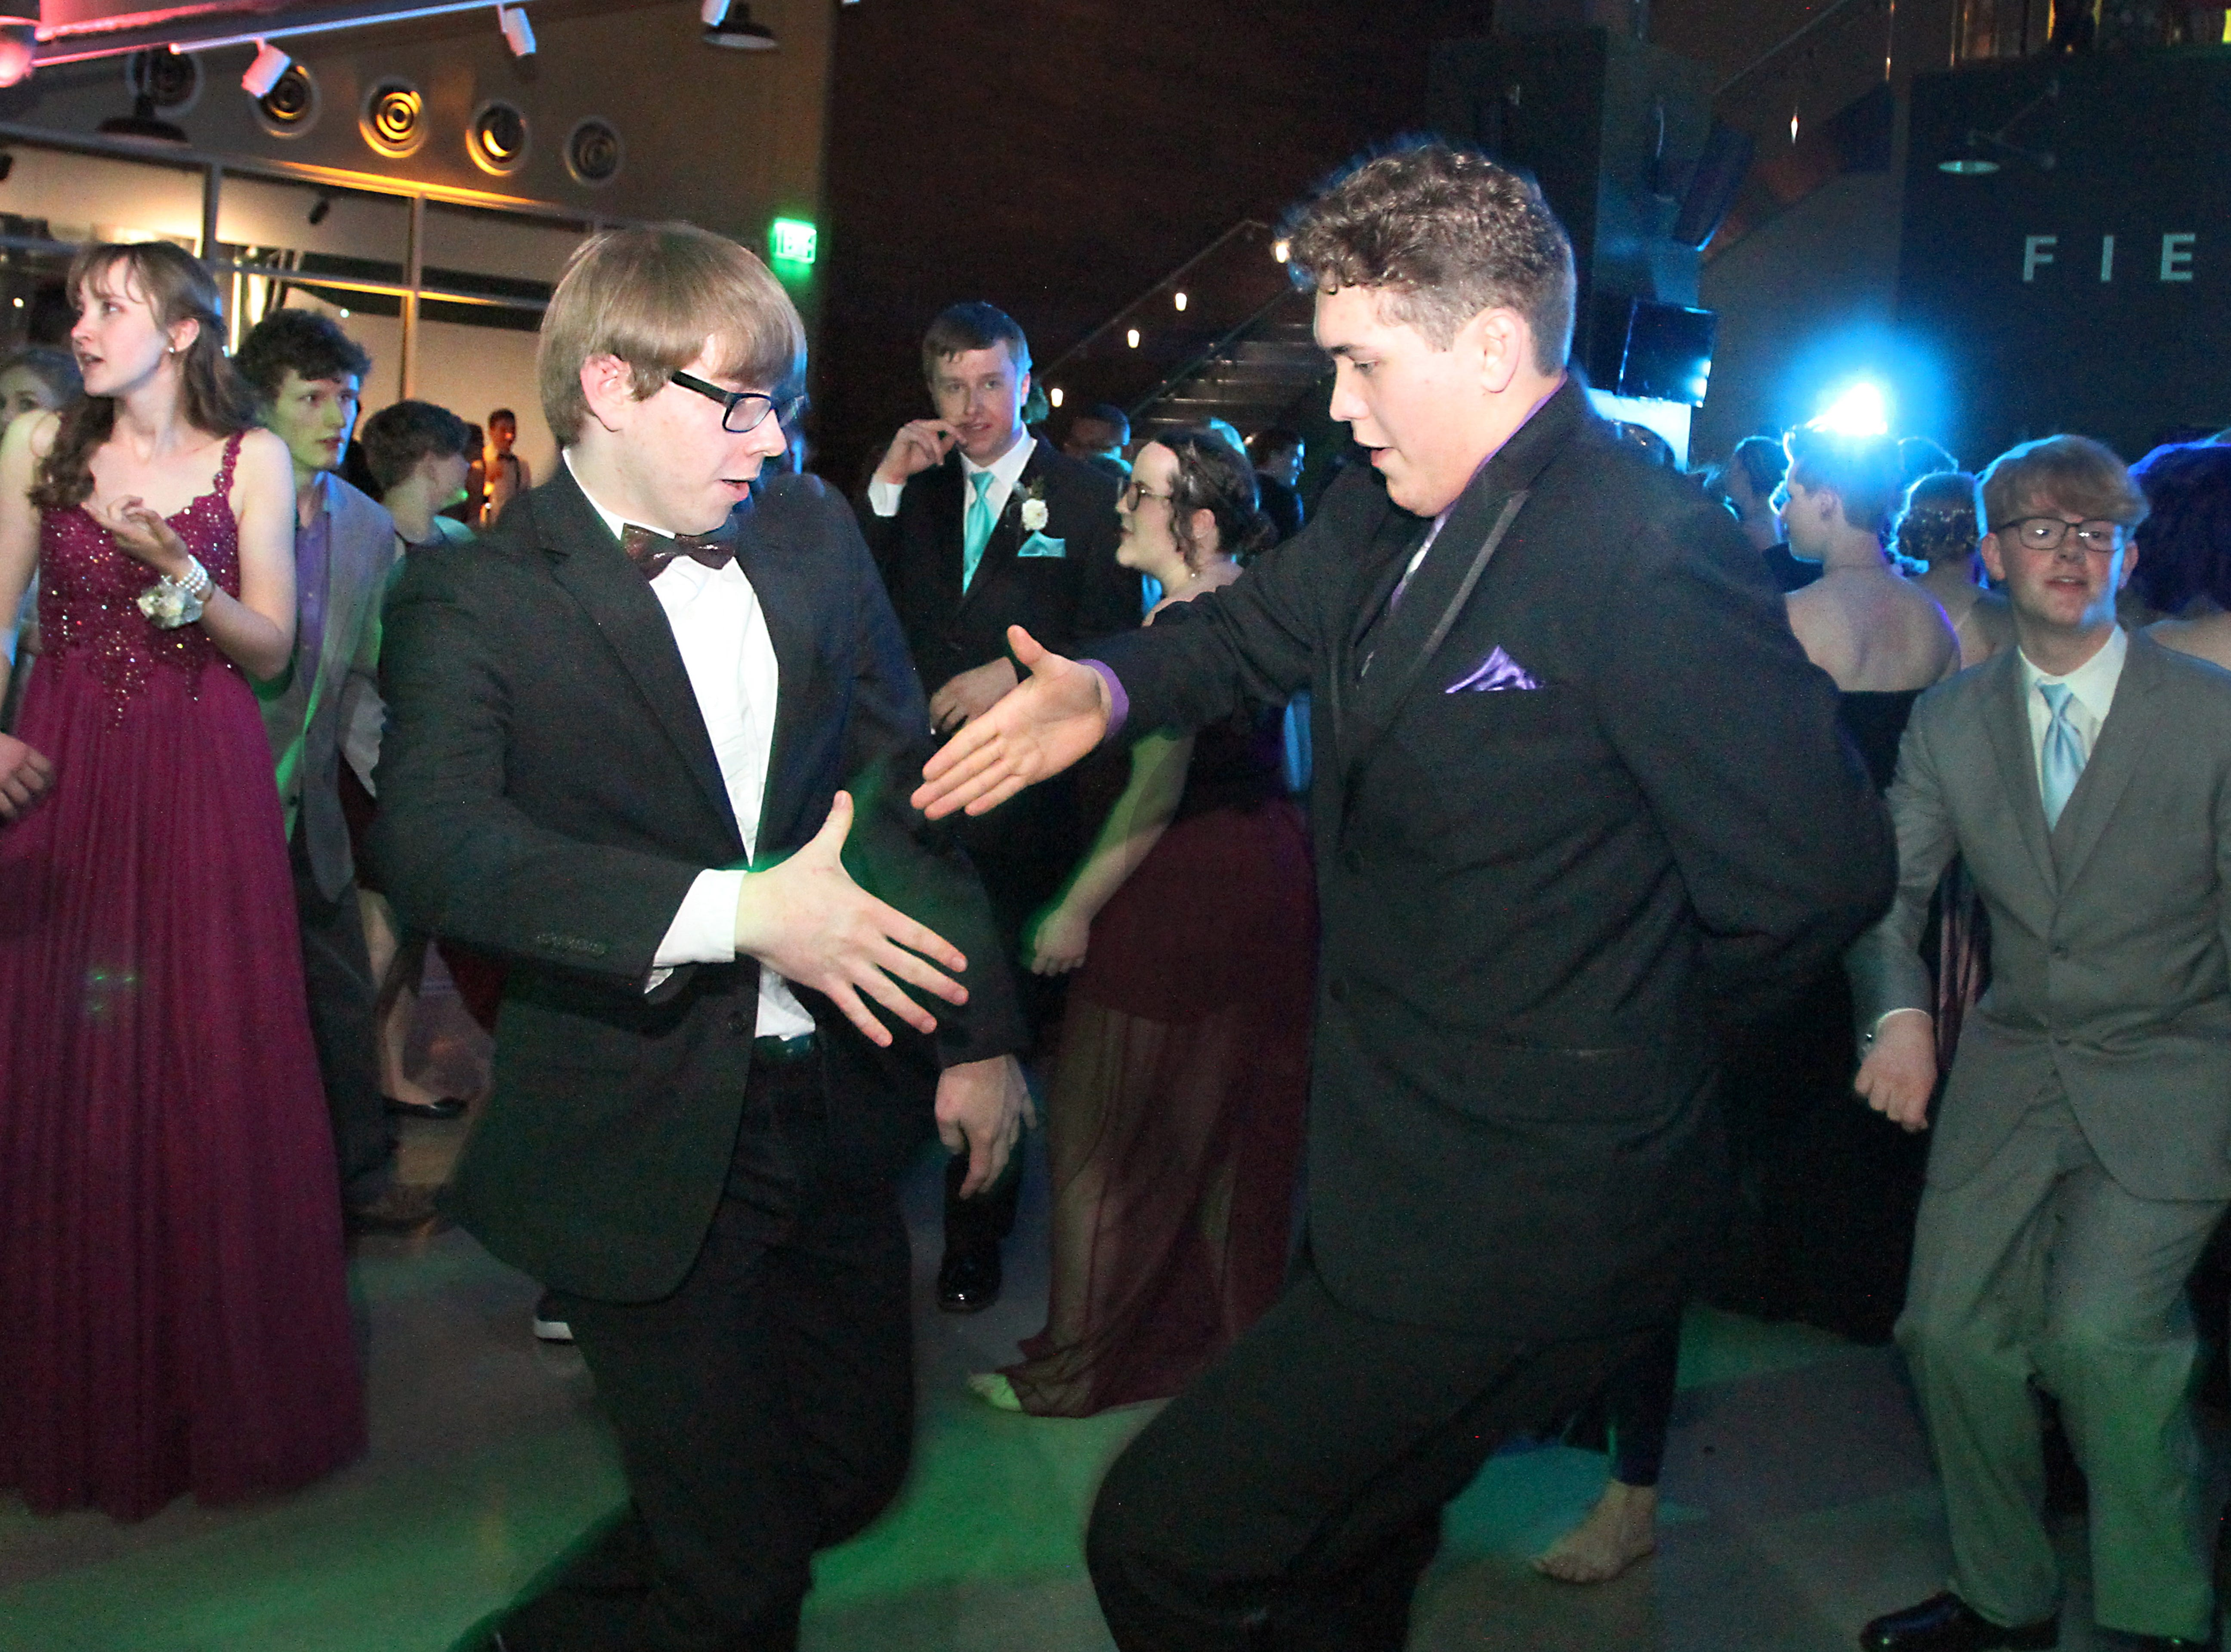 Fort Collins high School seniors, from left, Ian Wagers and Cameron Velez, go in for a high-five while grooving to the music during the Fort Collins High School prom held at Canvas stadium Saturday night.